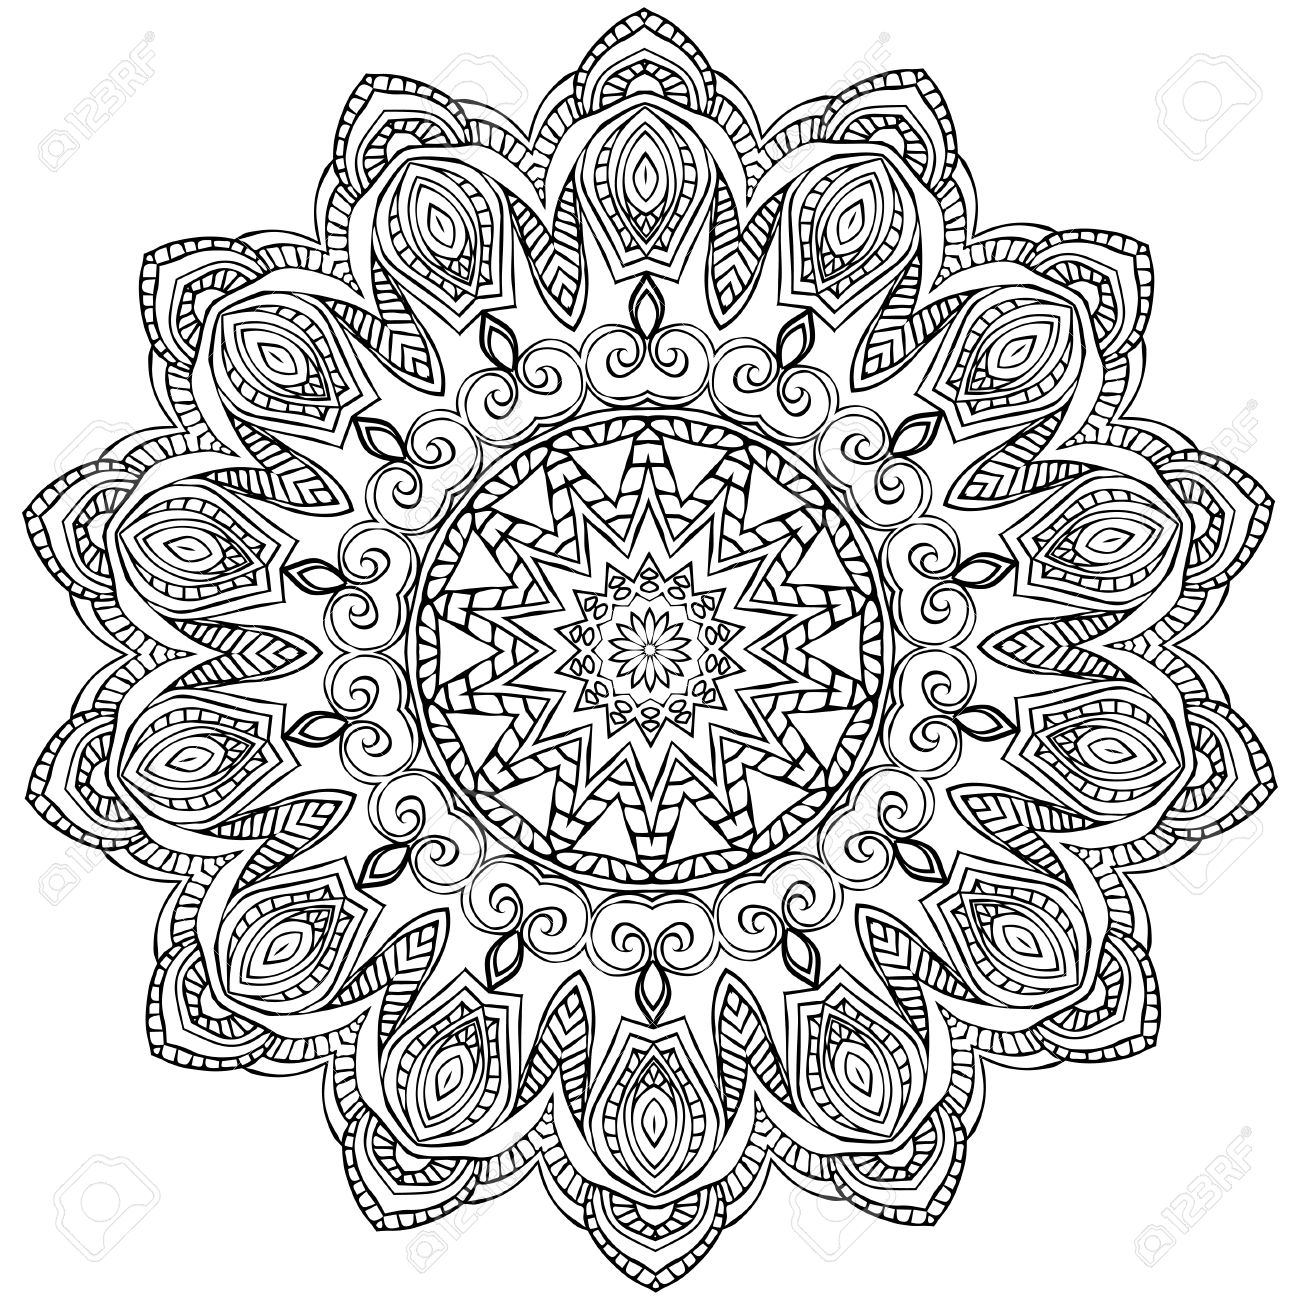 Ornament Black White Card With Mandala Geometric Circle Element Made In Vector Perfect Cards